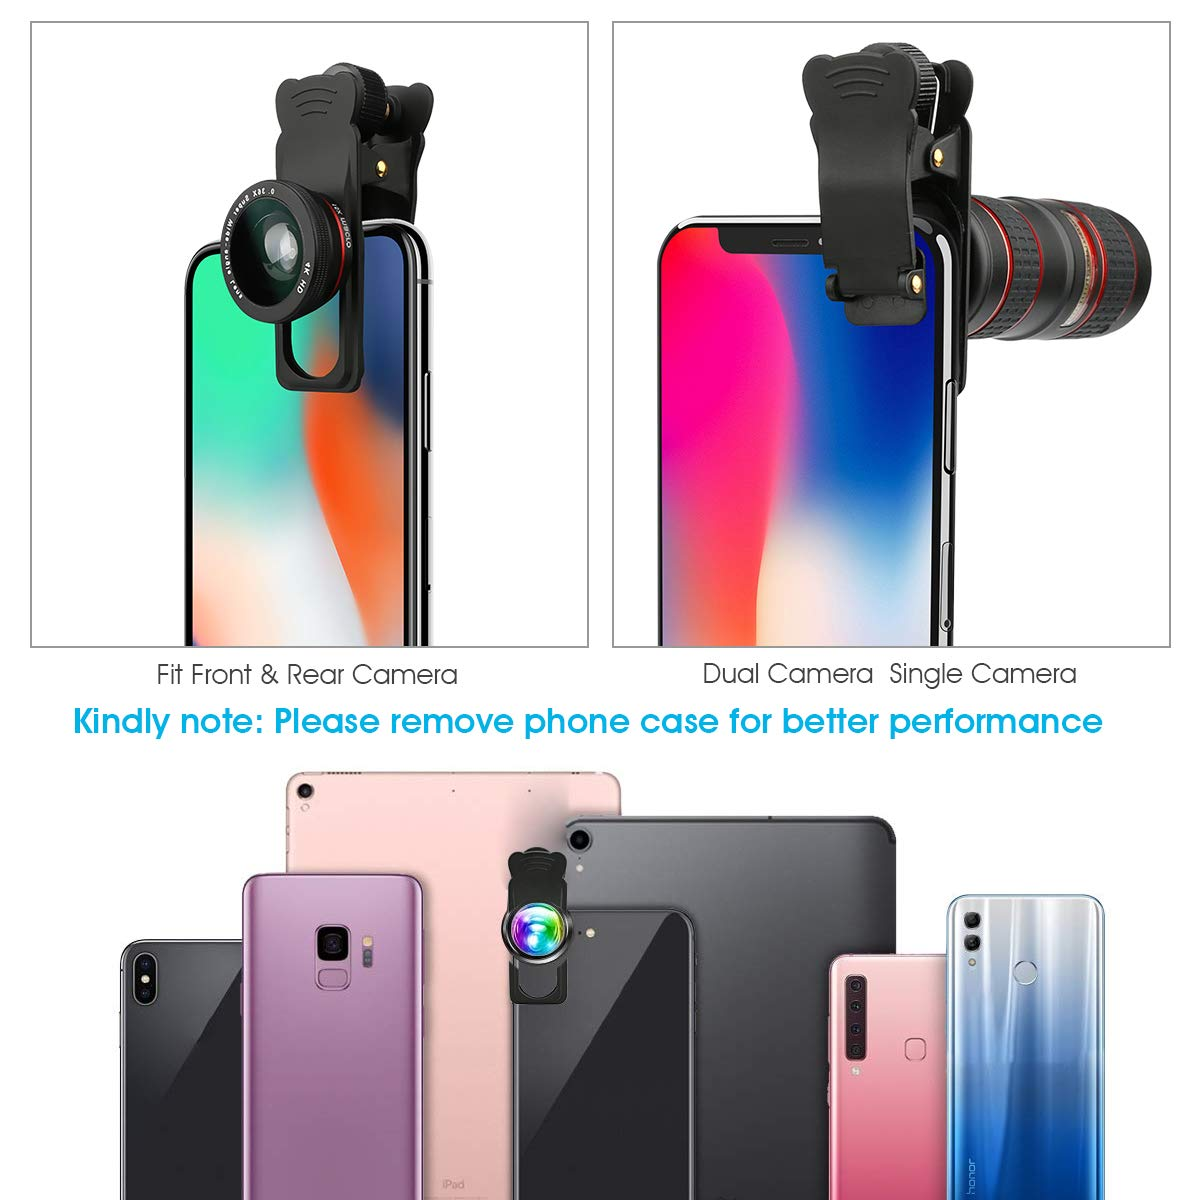 5 in 1 Phone Lens Kit -12X Zoom Telephoto Lens Samsung S10//S10+//S9//S8//S6 0.36X Wide Angle+ 180/° Fisheye Lens+ Dual 15X Macro Lens for iPhone X//XS//8//8P//7//6 AFAITH Upgraded Phone Camera Lens